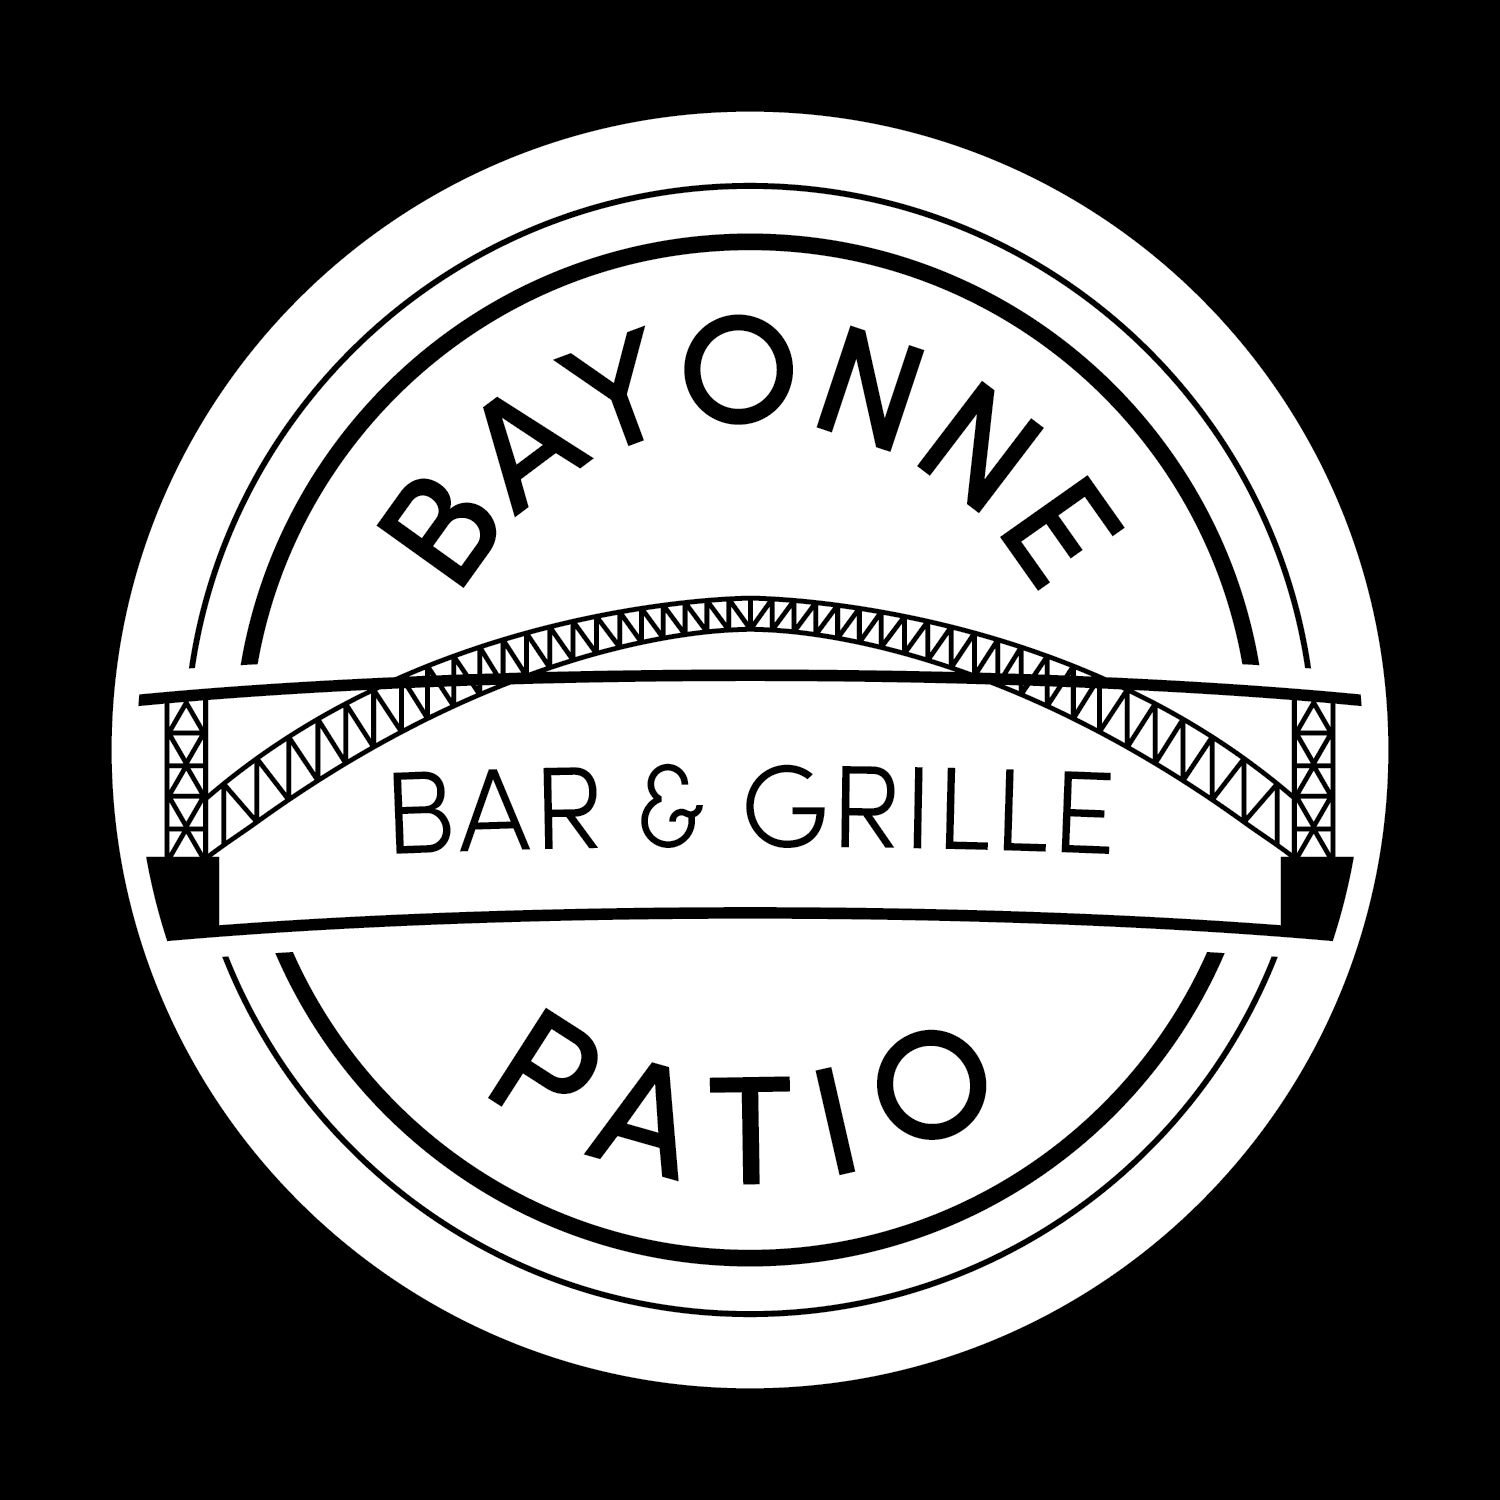 Bayonne Patio Bar & Grille